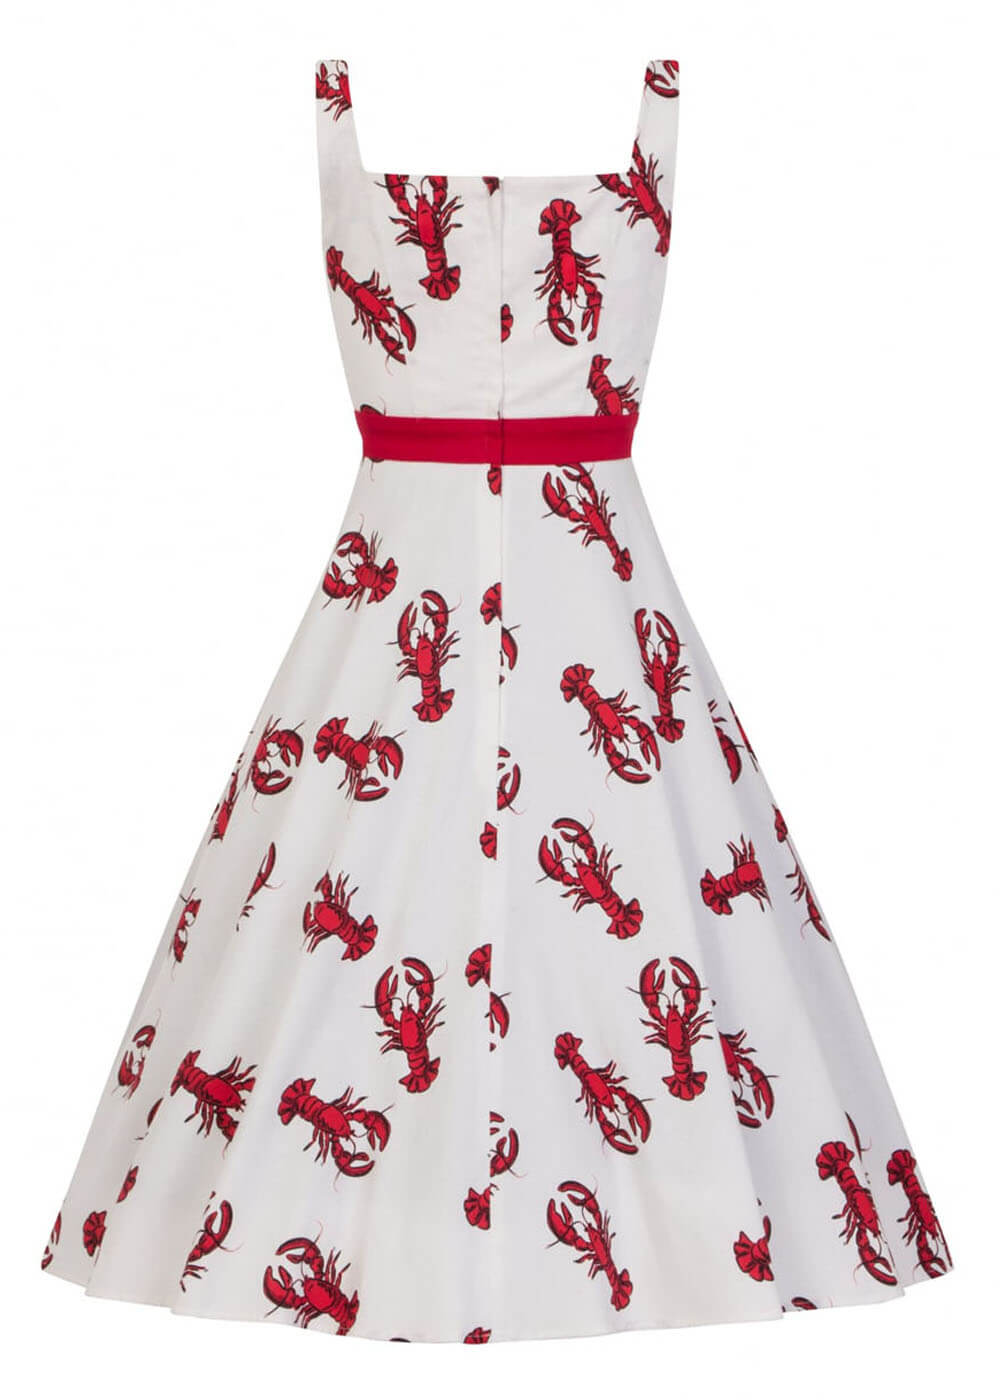 Collectif Sandrine Rock Lobster 50's Swing Dress White